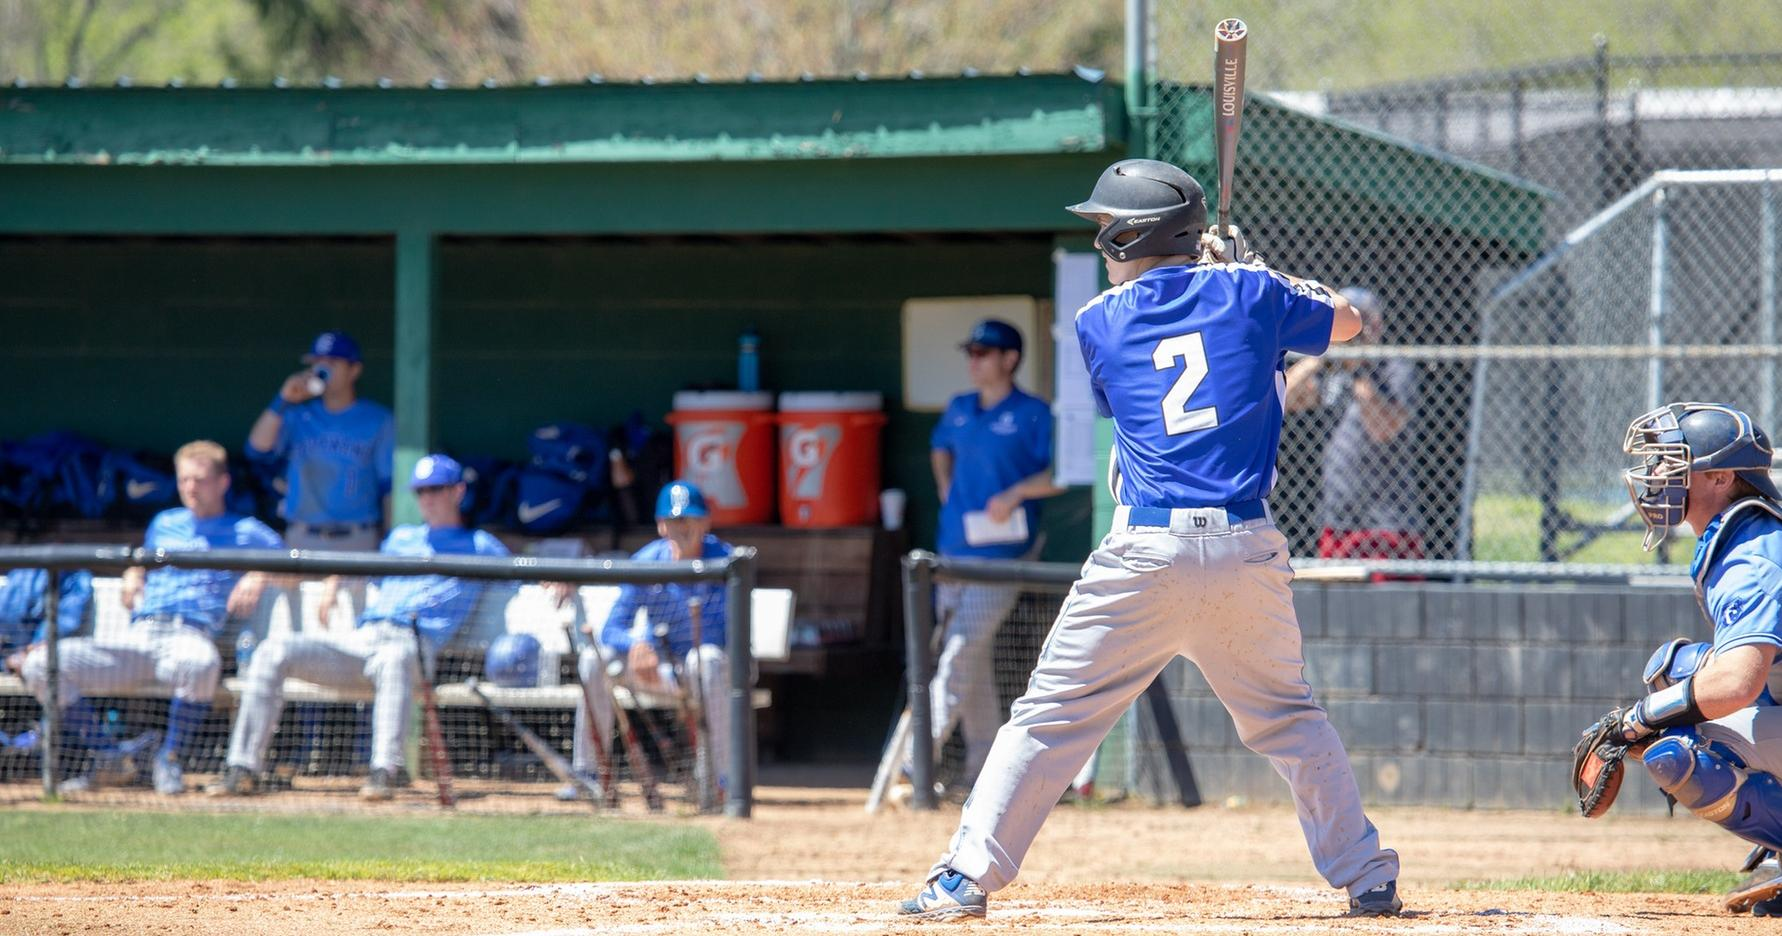 Tornados Battle Back for Big Win over Royals, 12-10